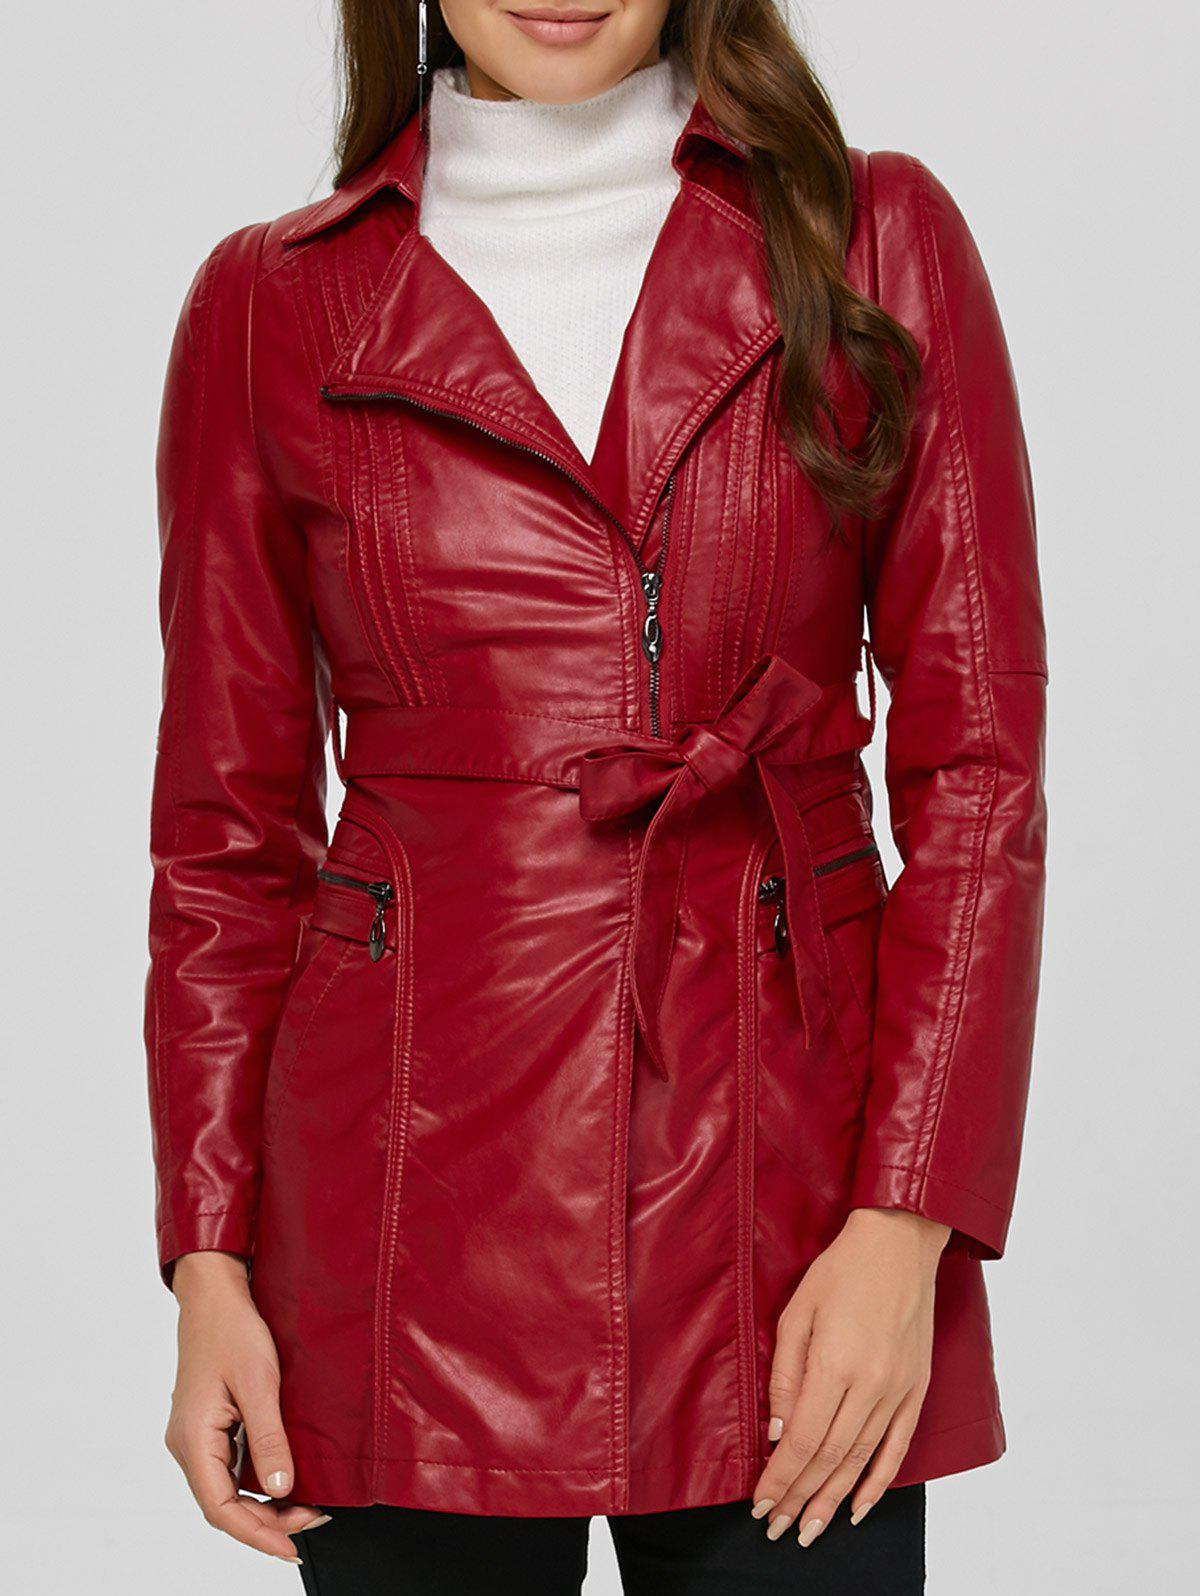 Cheap Asymmetrical Belted Faux Leather Jacket